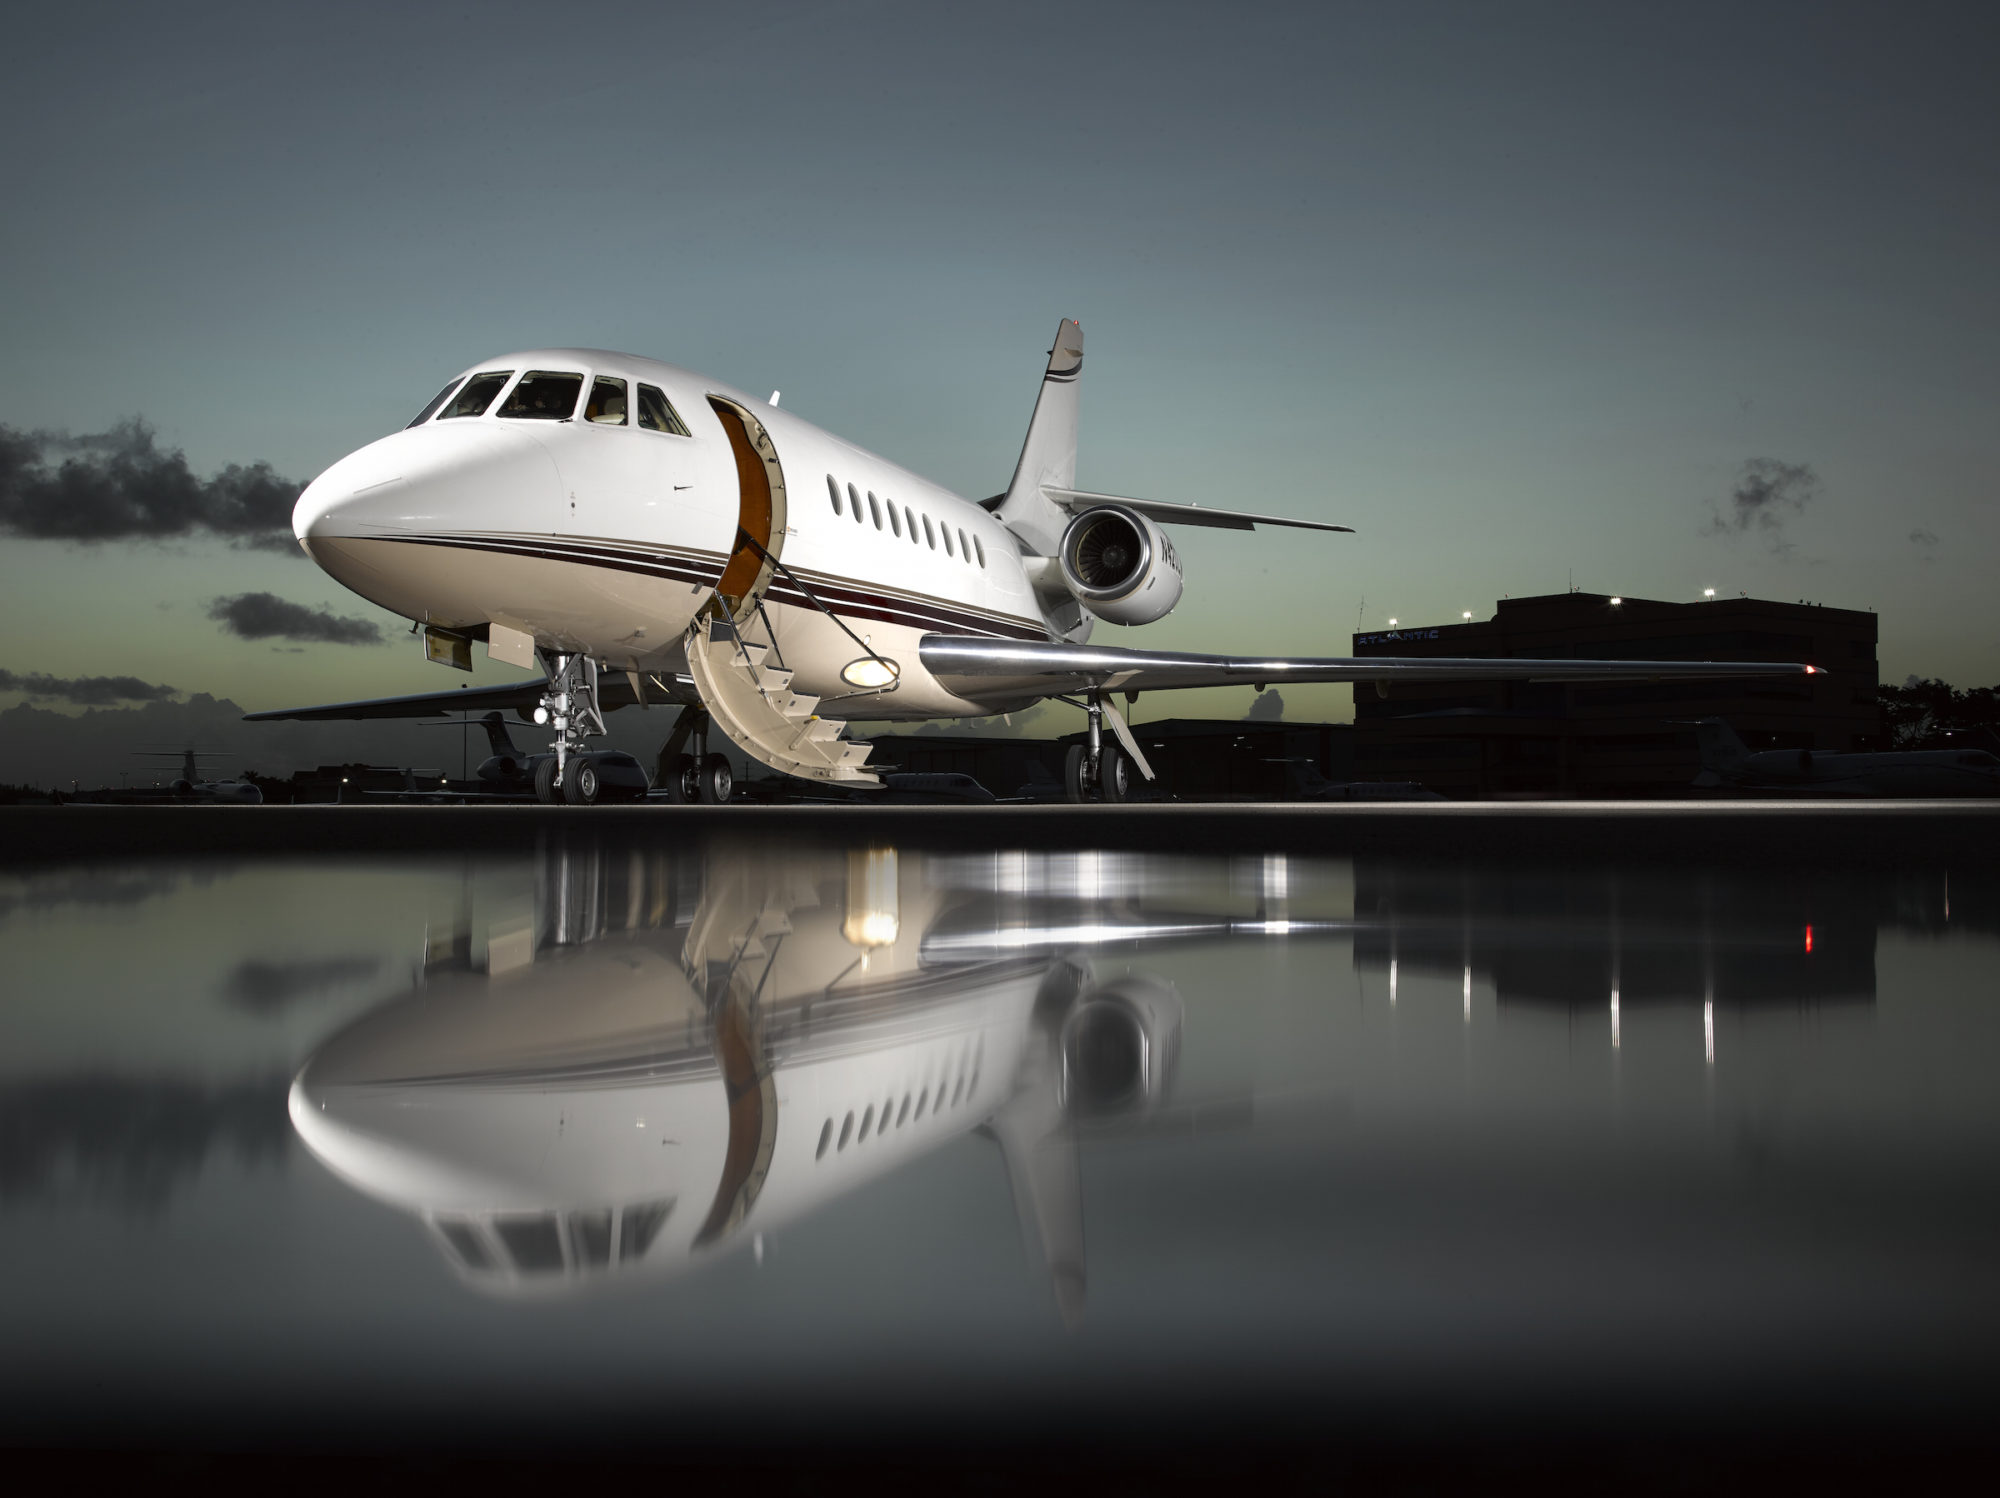 Aircraft Acquisition and Sales